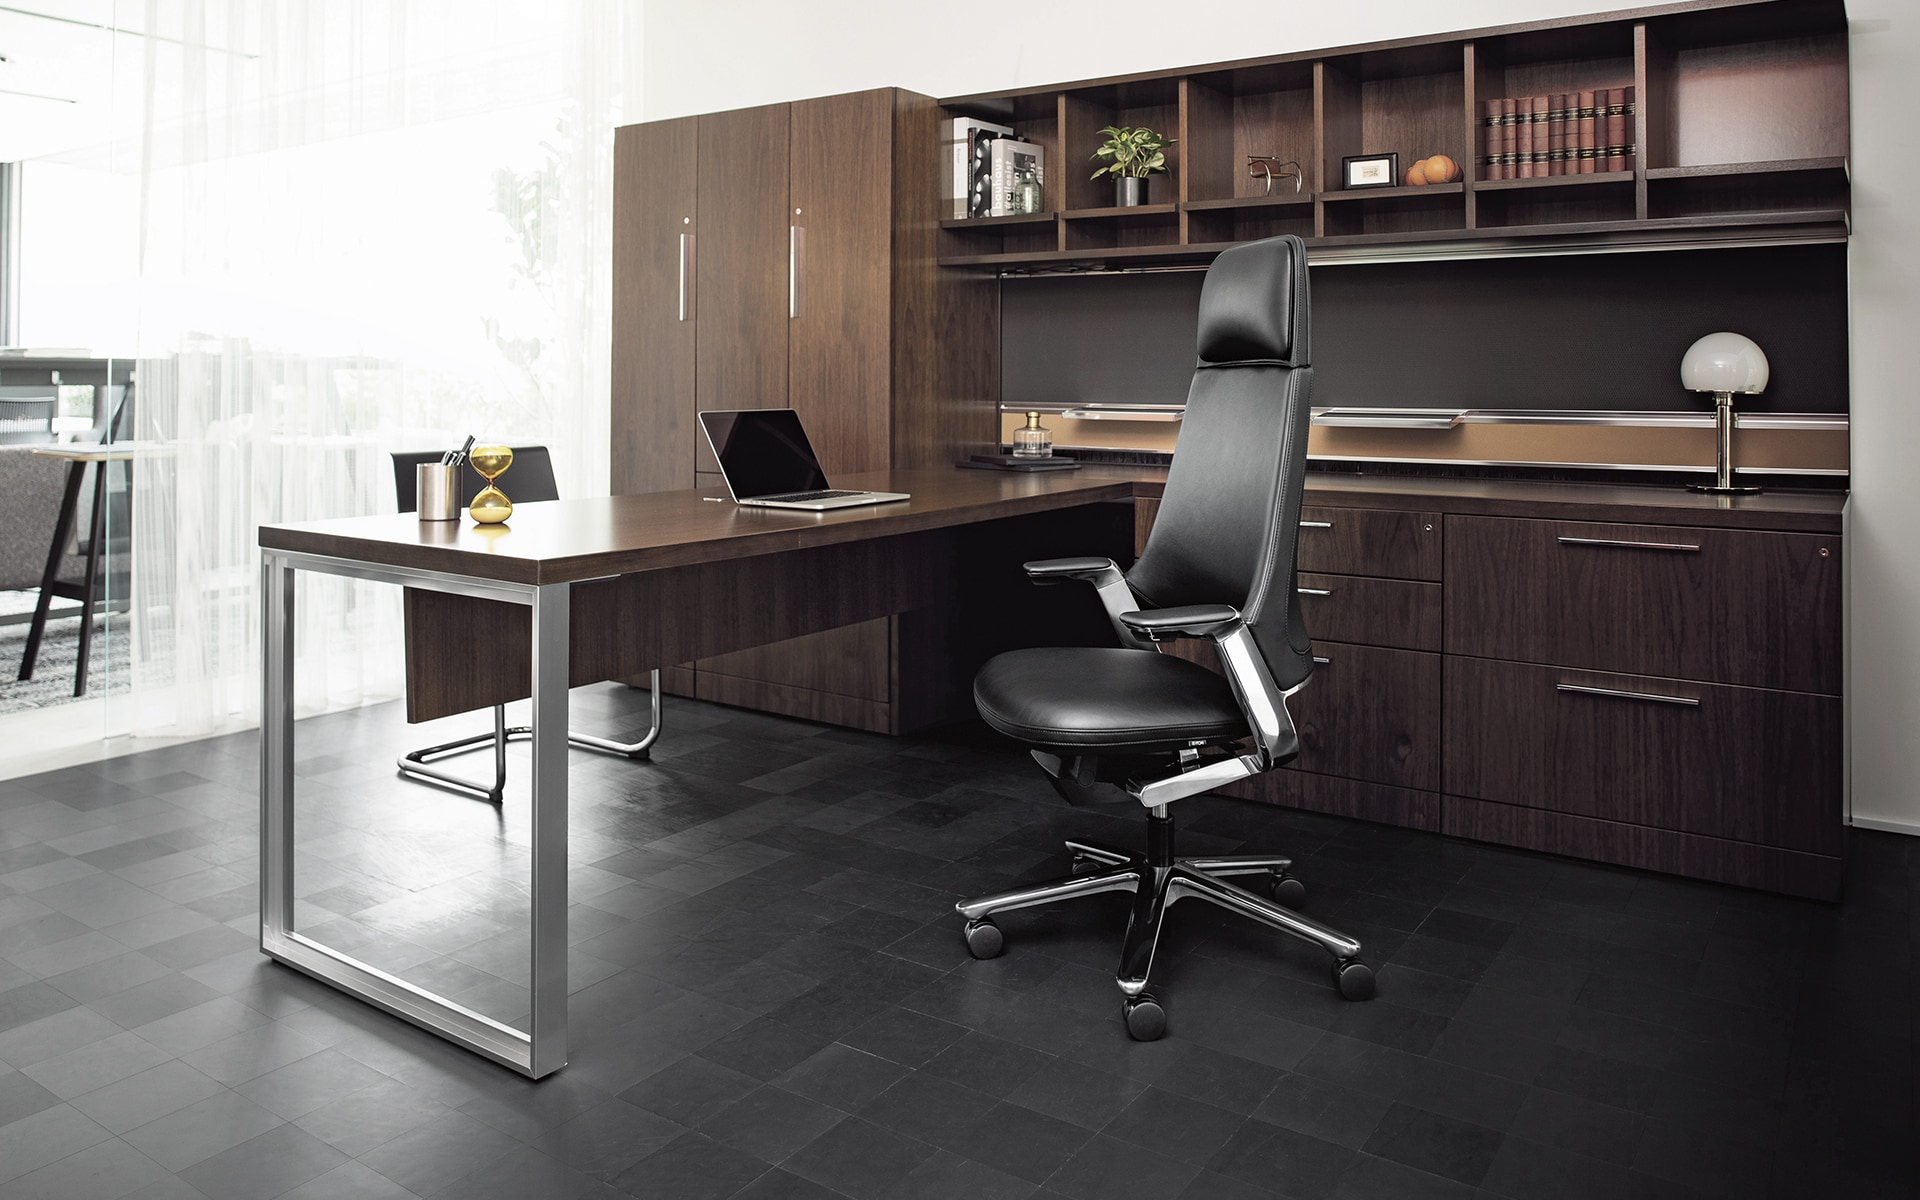 The ITOKI Leonis executive chair by ITO Design in black in an elegant office with dark wood furniture